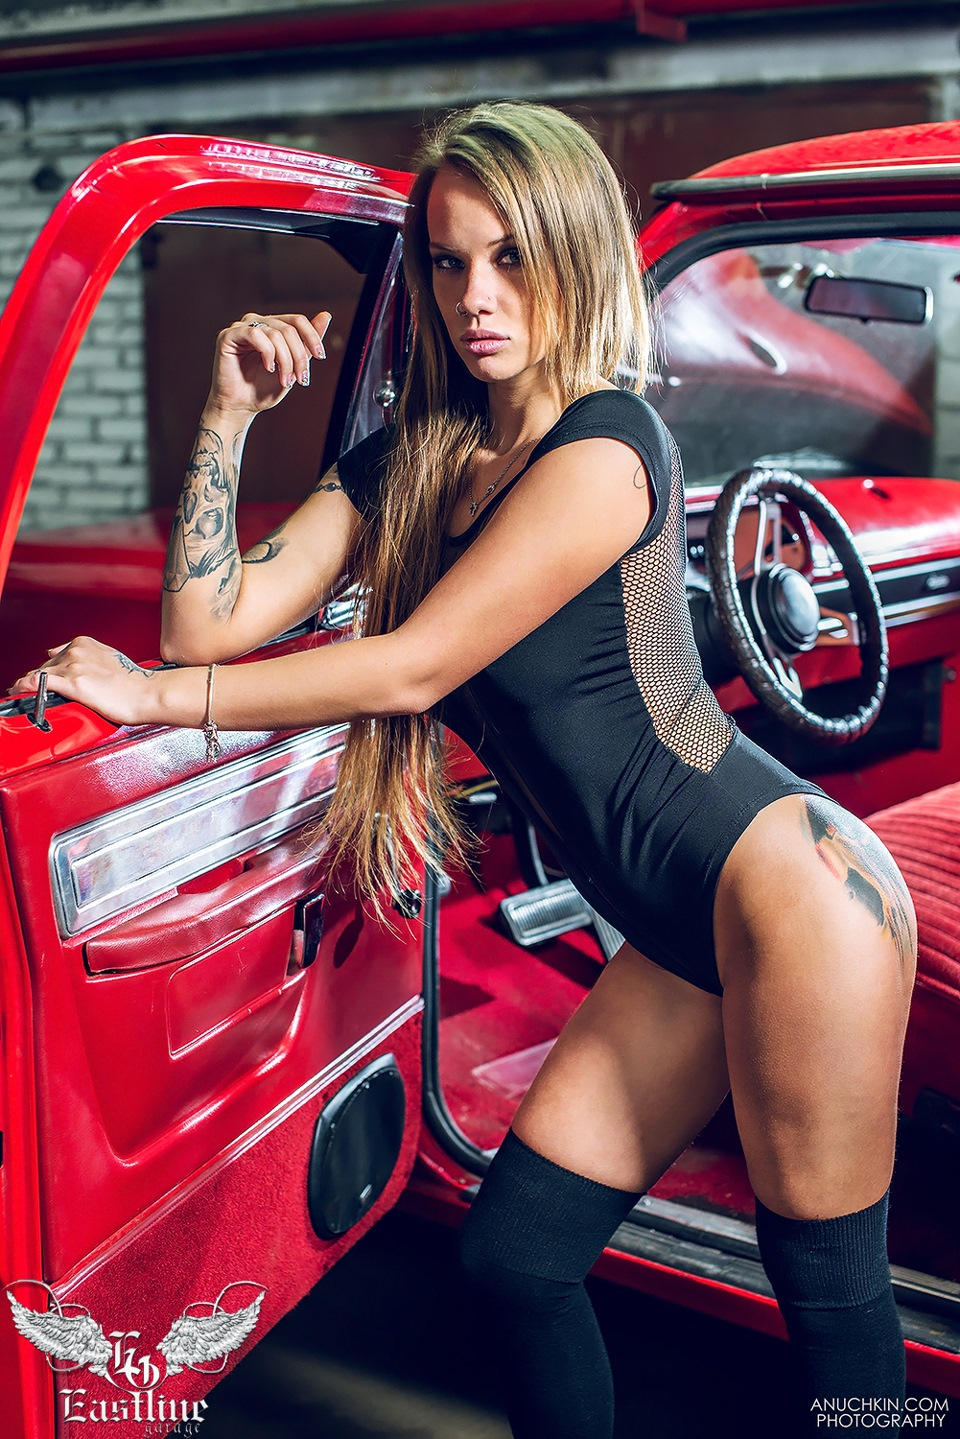 Sexy Cars For Women